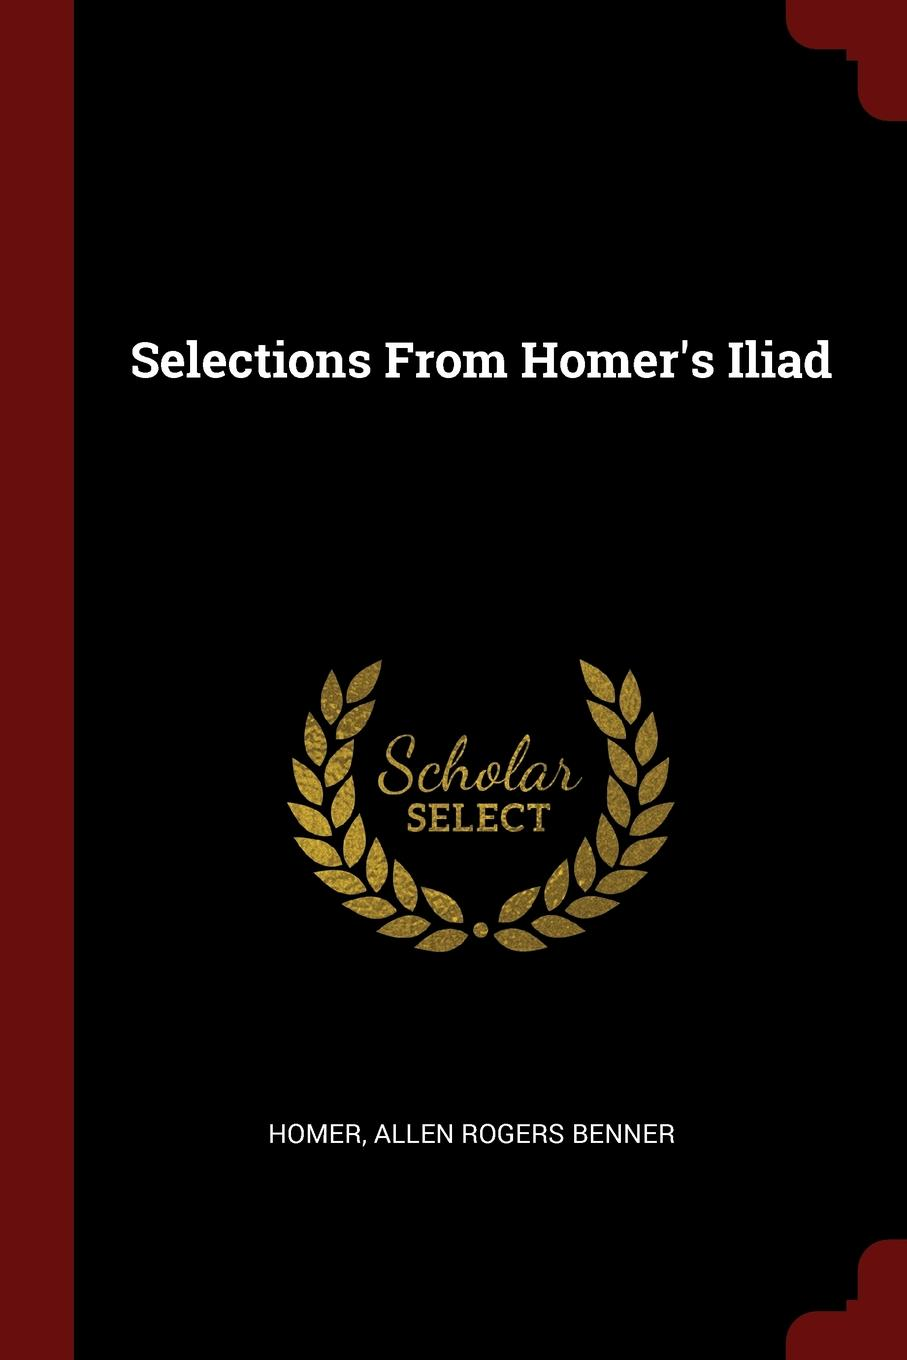 Homer, Allen Rogers Benner Selections From Homer.s Iliad